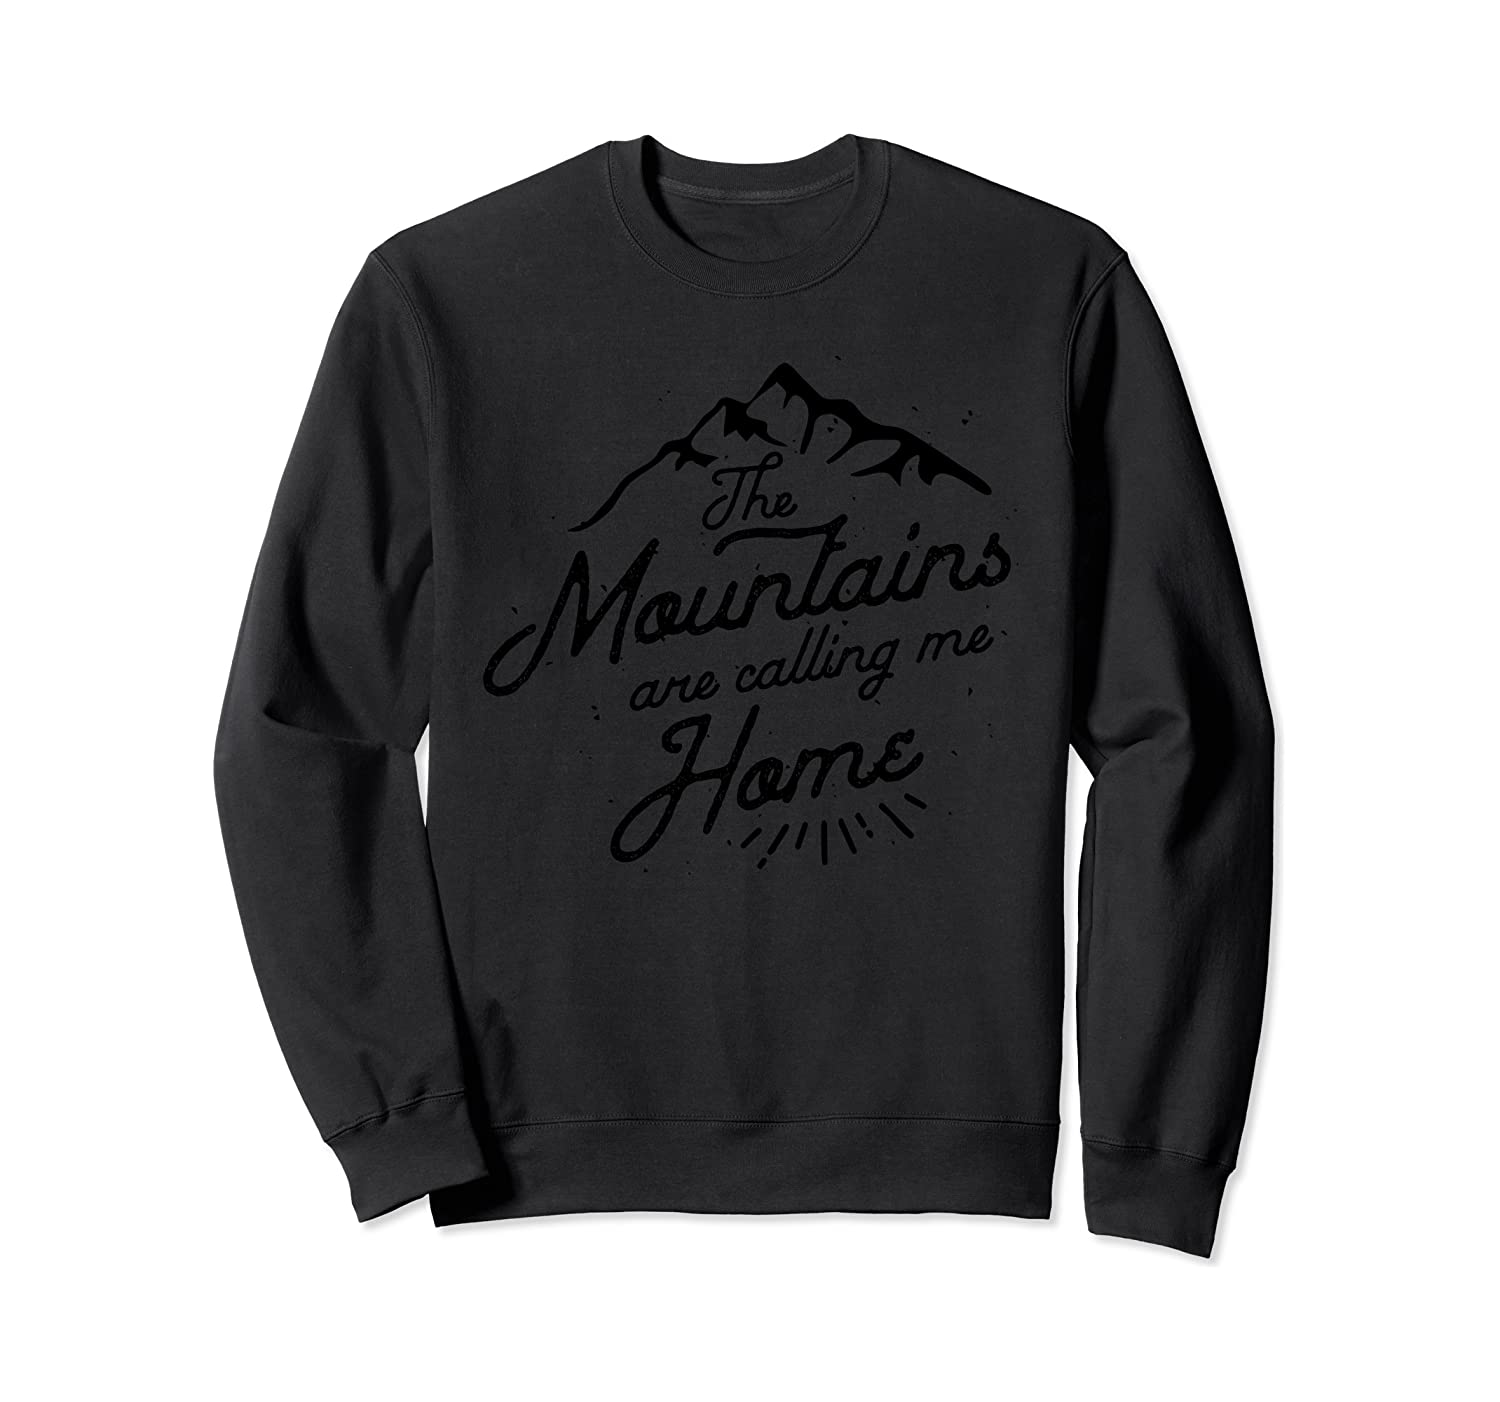 The Mountains are Calling Me Home Sweatshirt